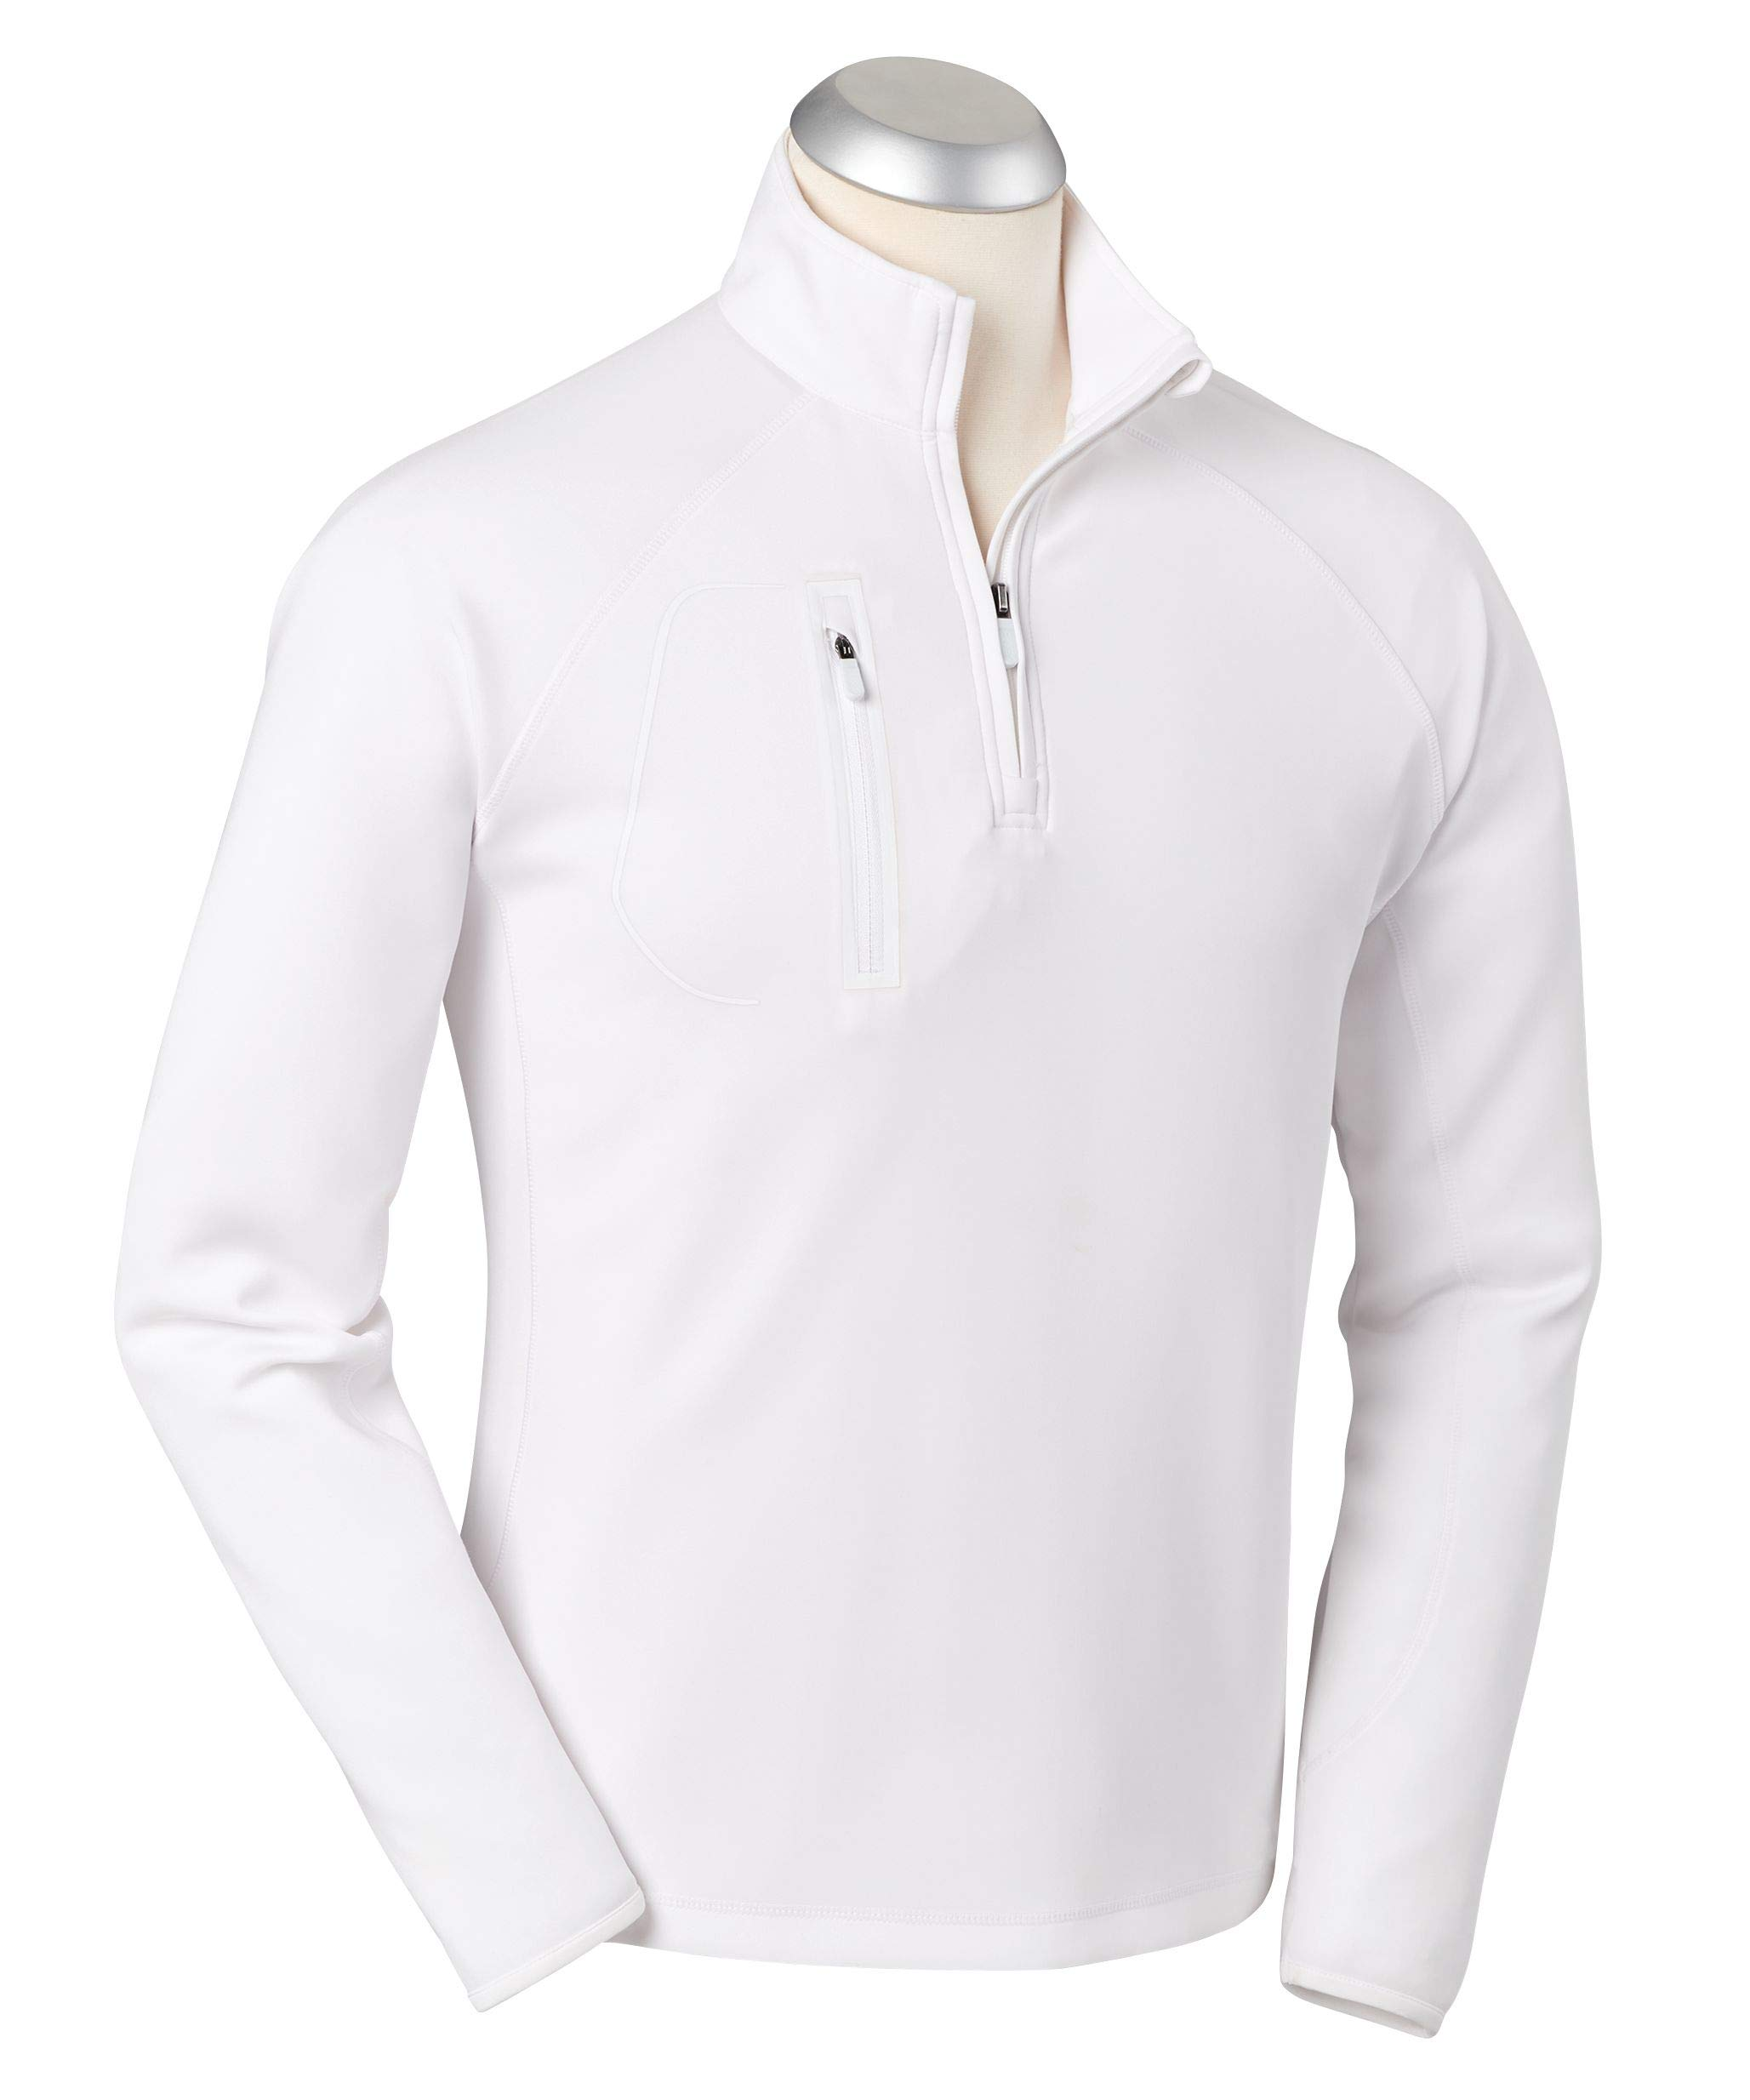 Bobby Jones XH2O Crawford Performance Golf Pullover - Men's 1/4 Zip Pullover Golf Apparel White by Bobby Jones